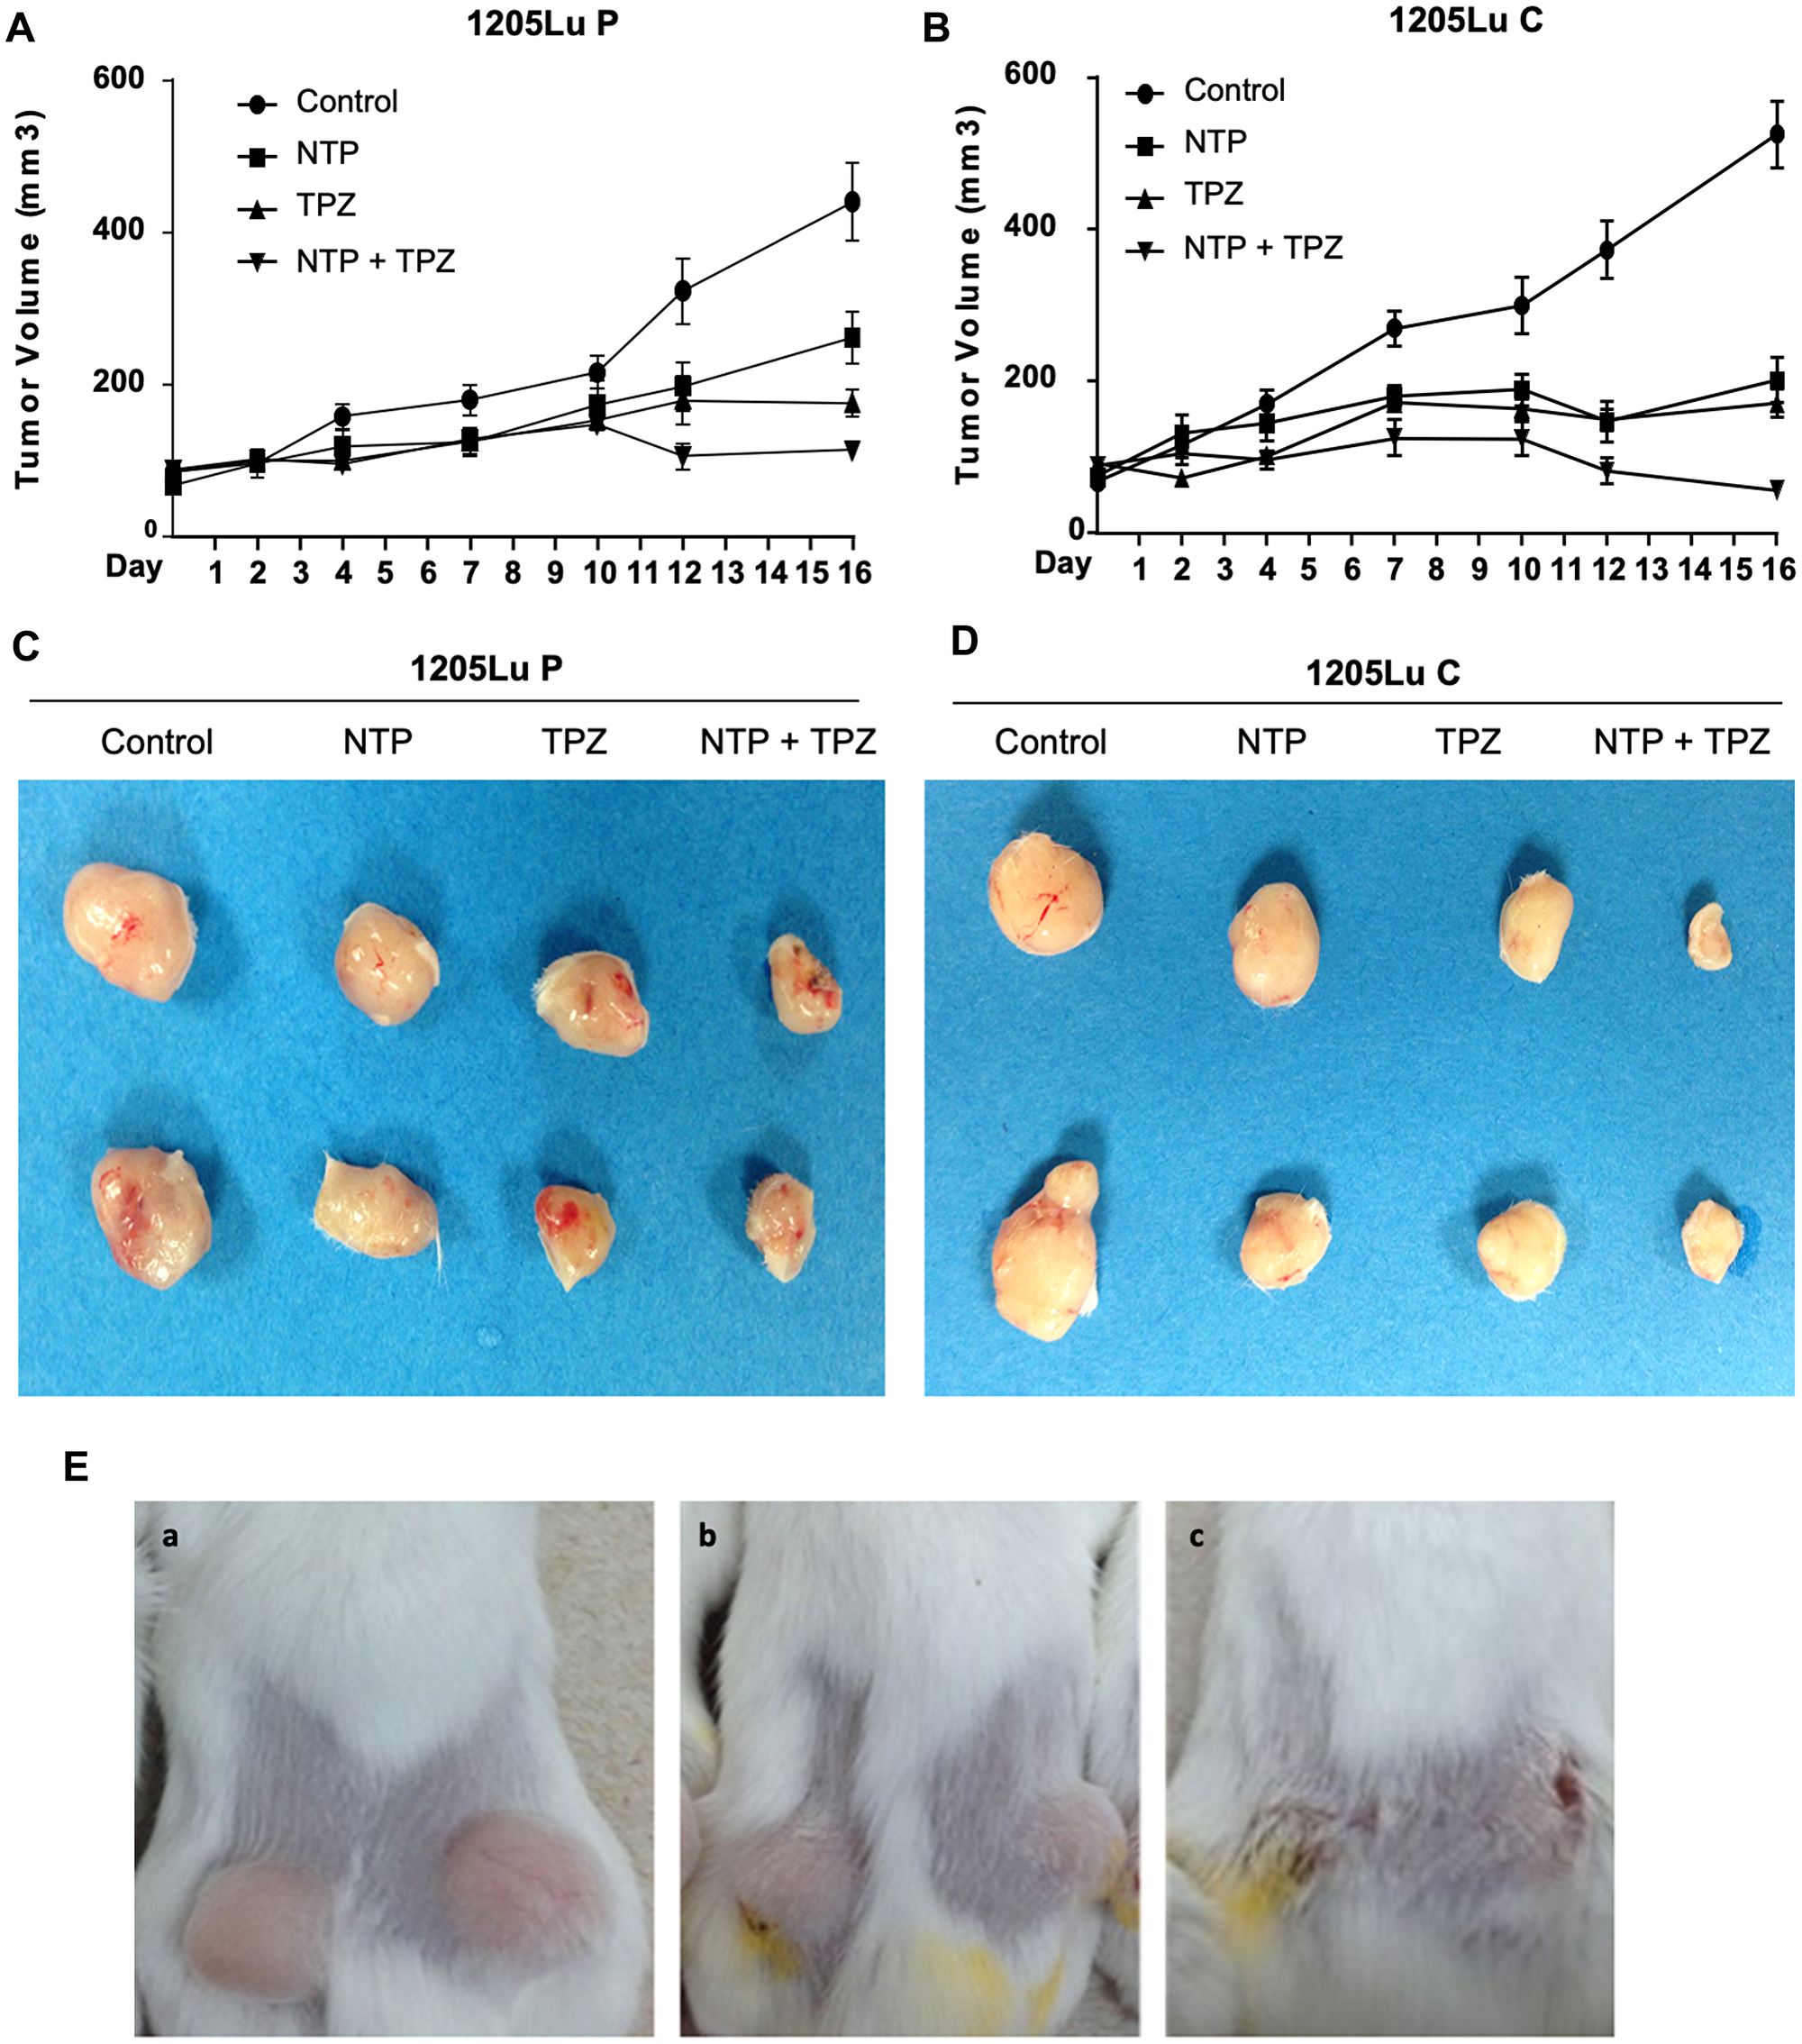 Effects of gap junctions on in vivo treatment with NTP+TPZ.